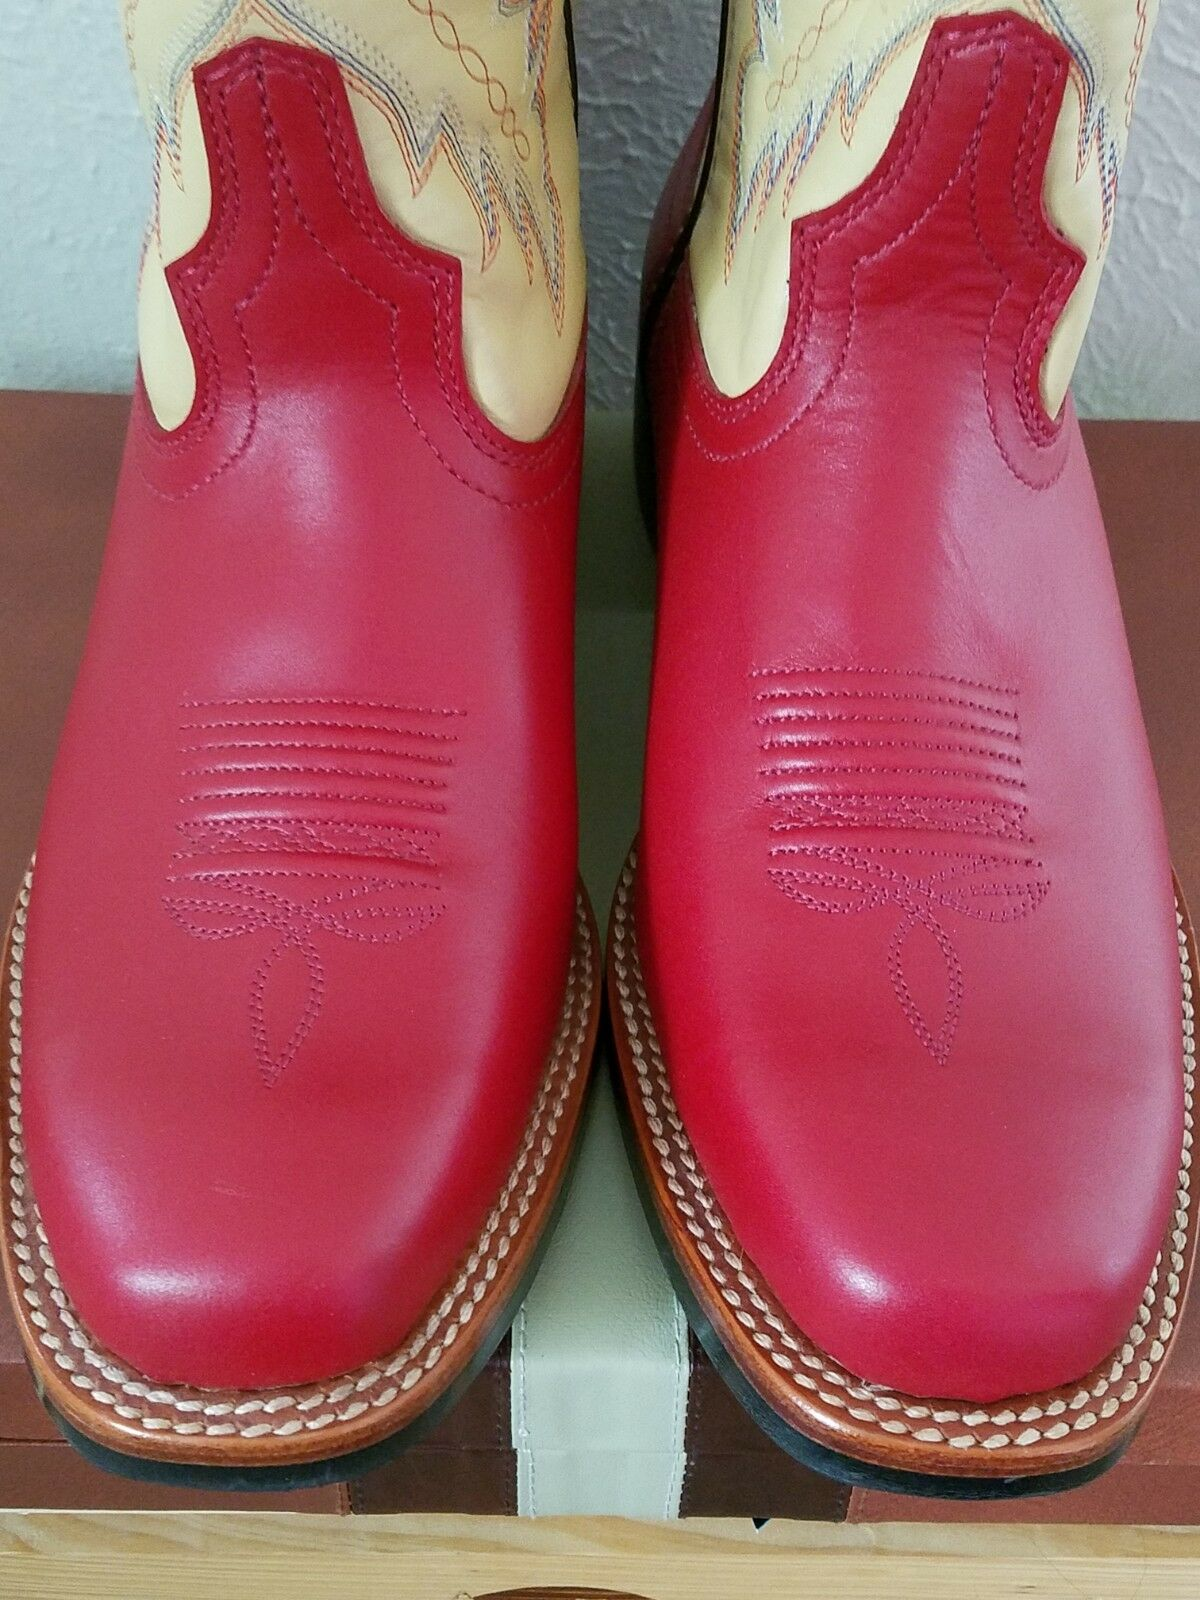 RARE Acme Cowboy Boots Red and Tan 9.5 9.5 9.5 US NEW f68d66